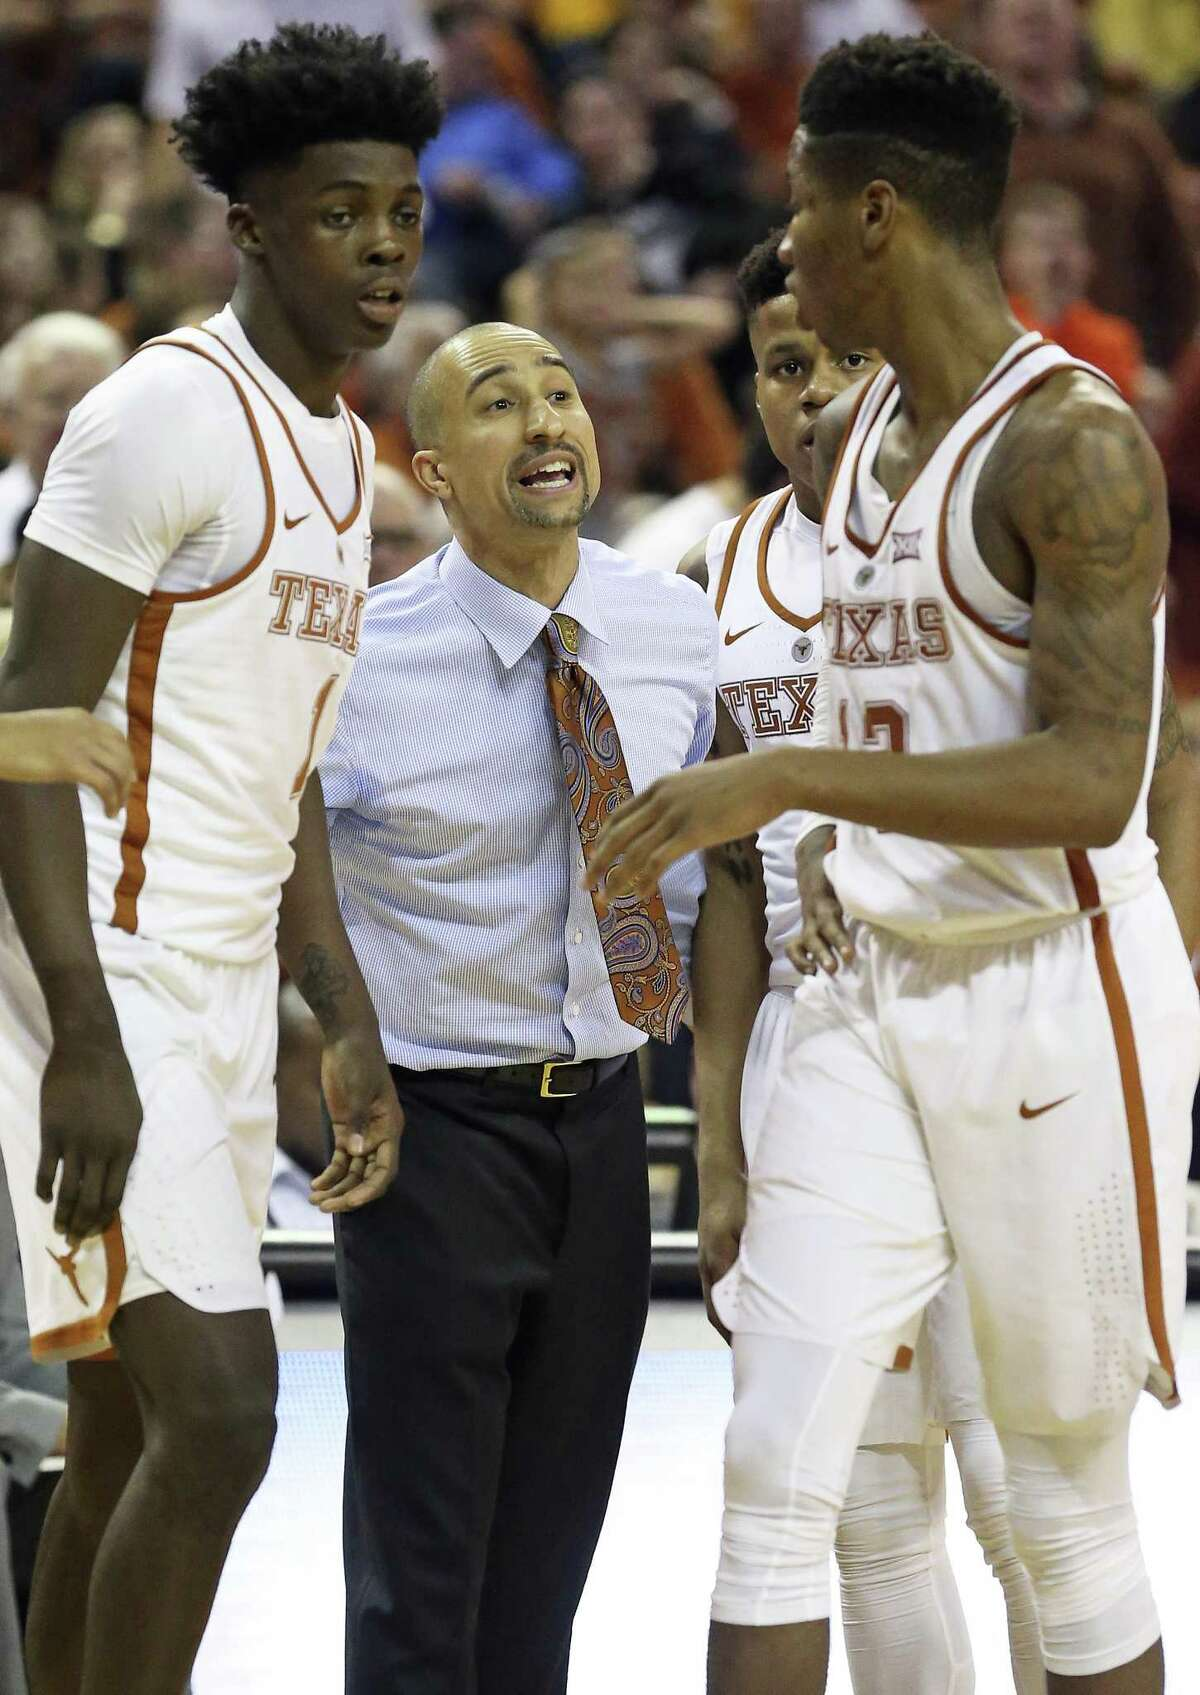 Longhorn coach Shaka Smart instructs players after a foul as UT takes on West Virginia at the Erwin Center on Jan., 14, 2017.